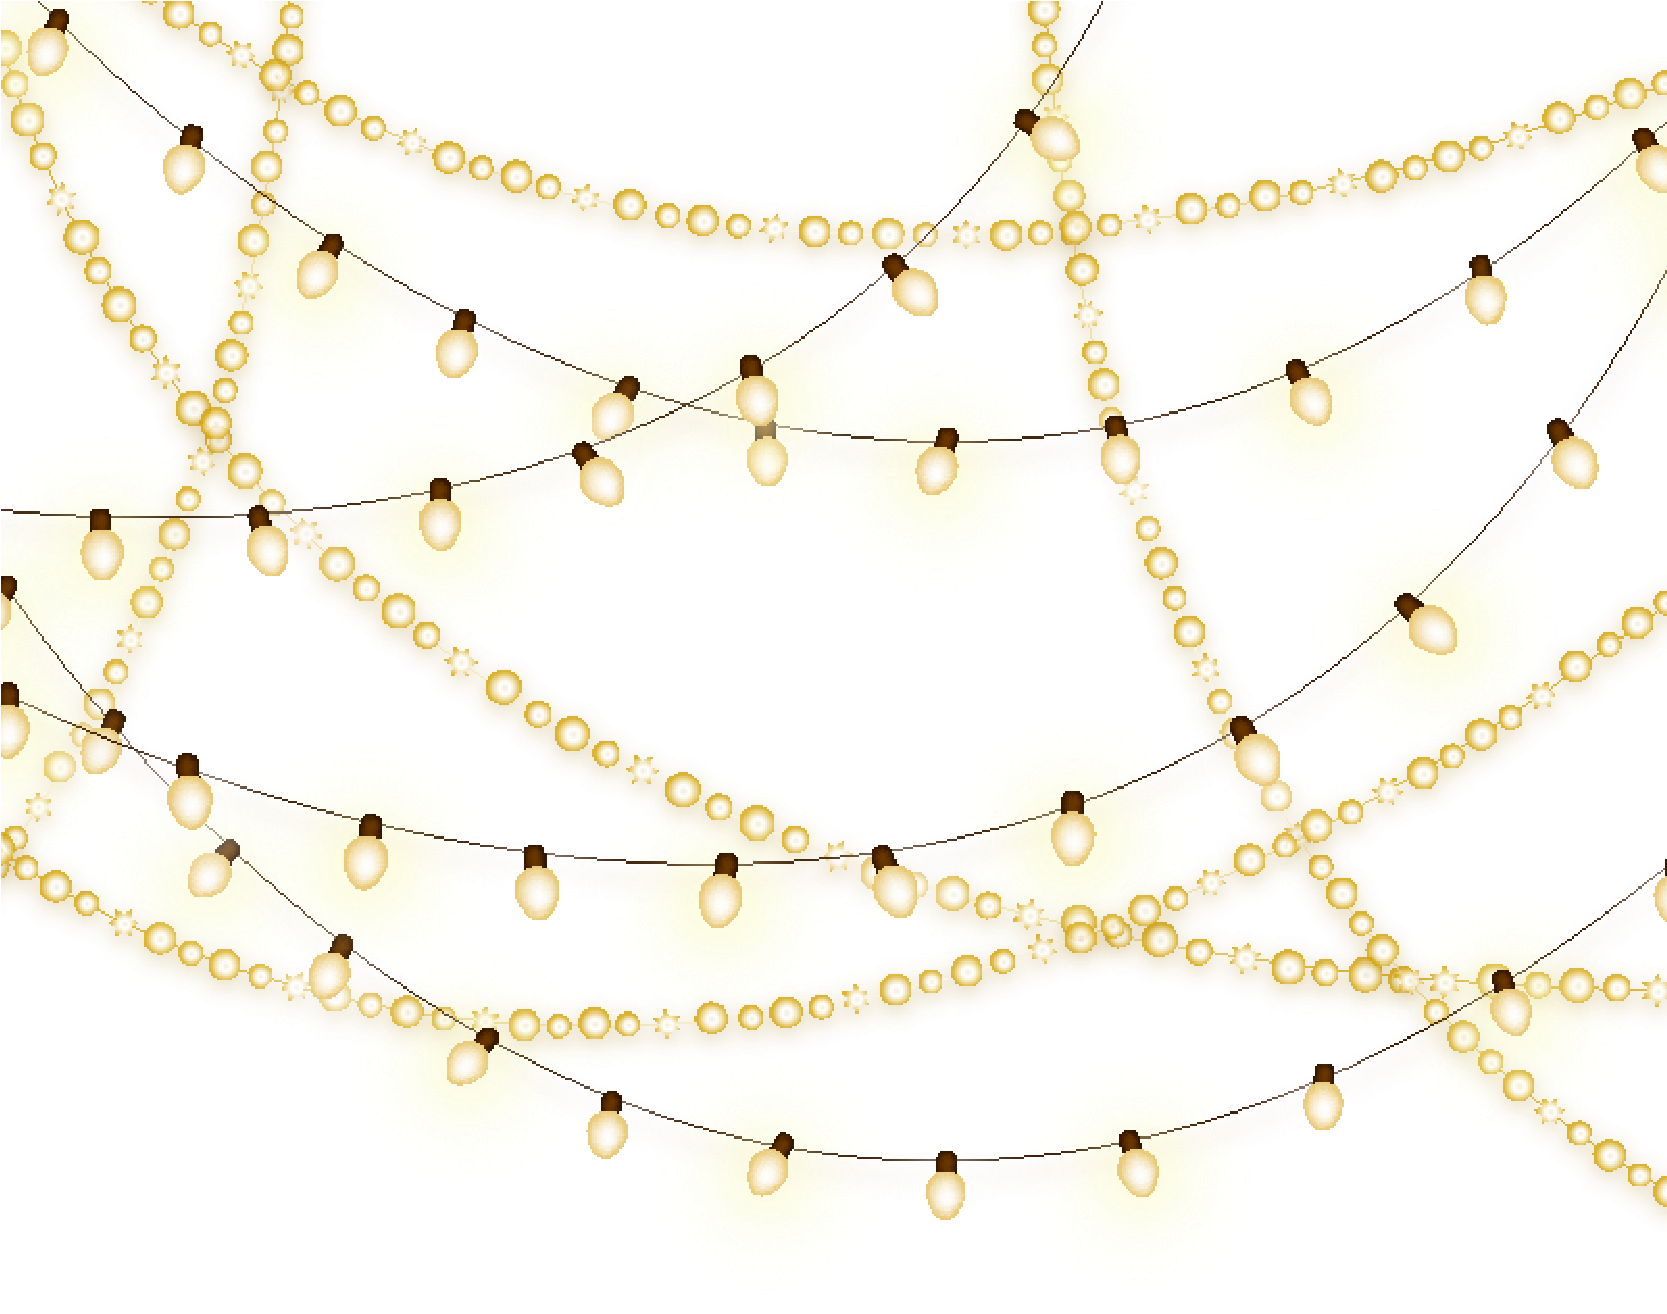 HD White Christmas Lights Png Transparent Background.